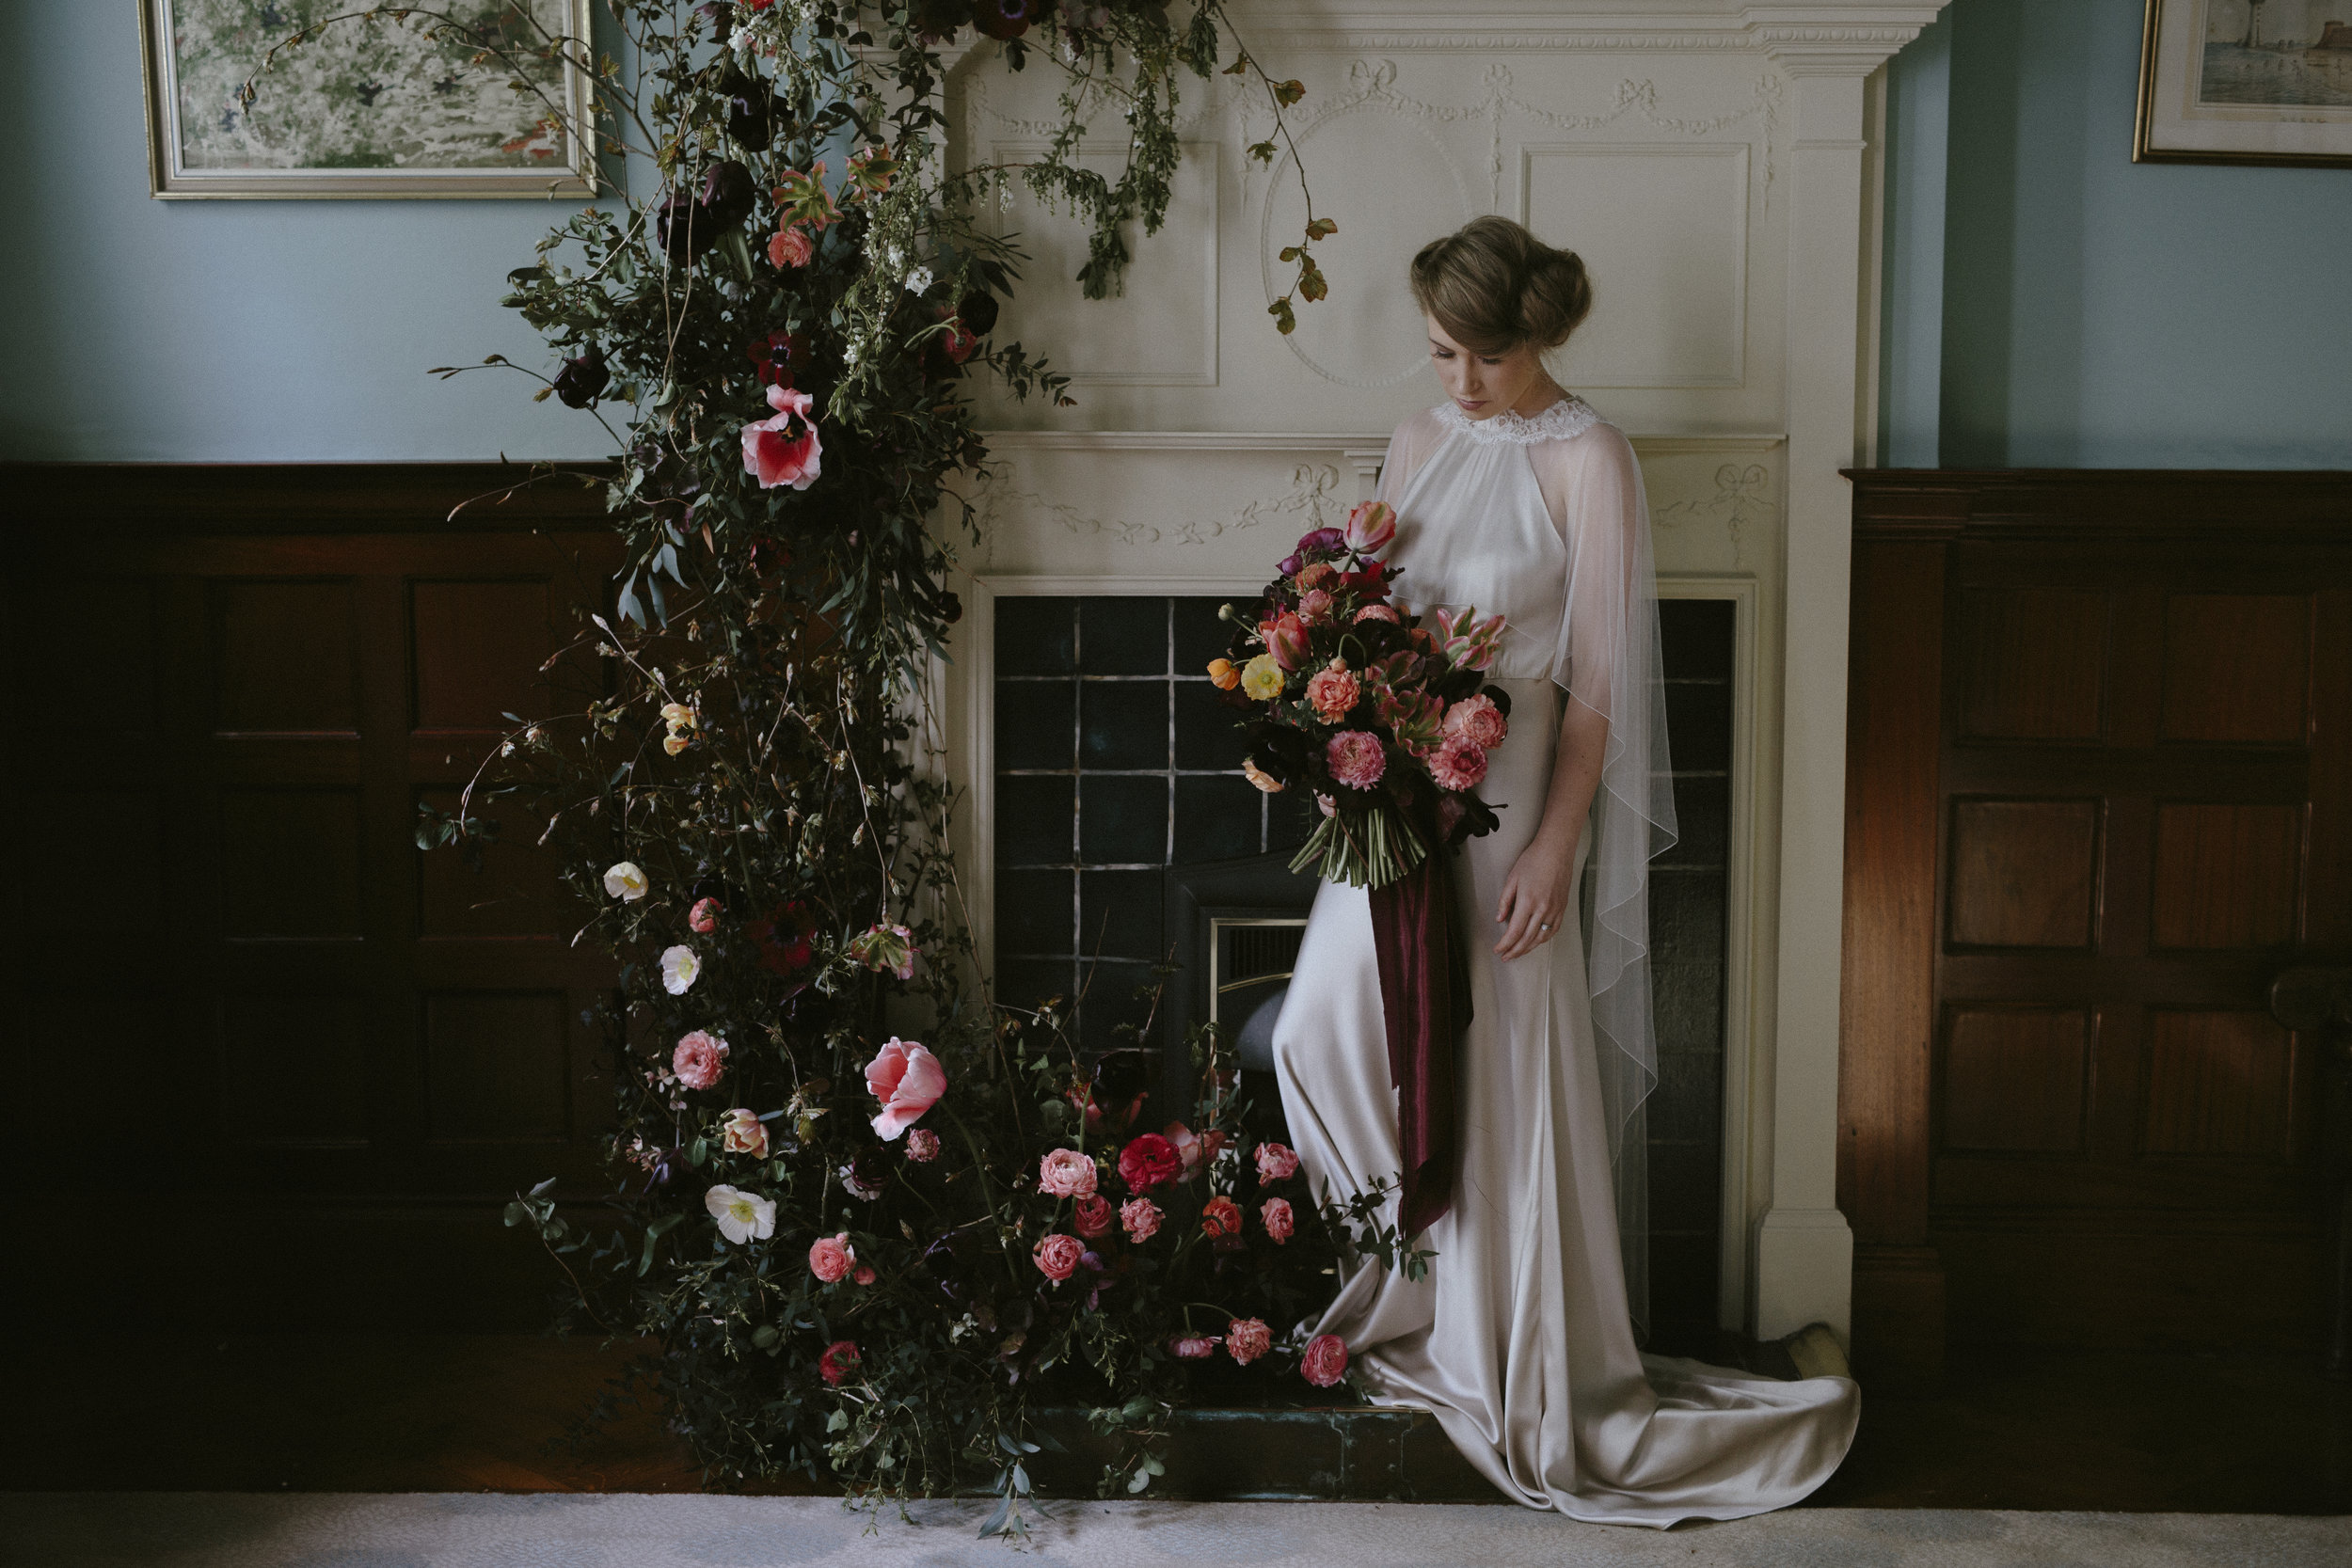 Agnes-and-bee-Kate-Beaumont-wedding-dresses-Ruth-Atkinson-15.jpg